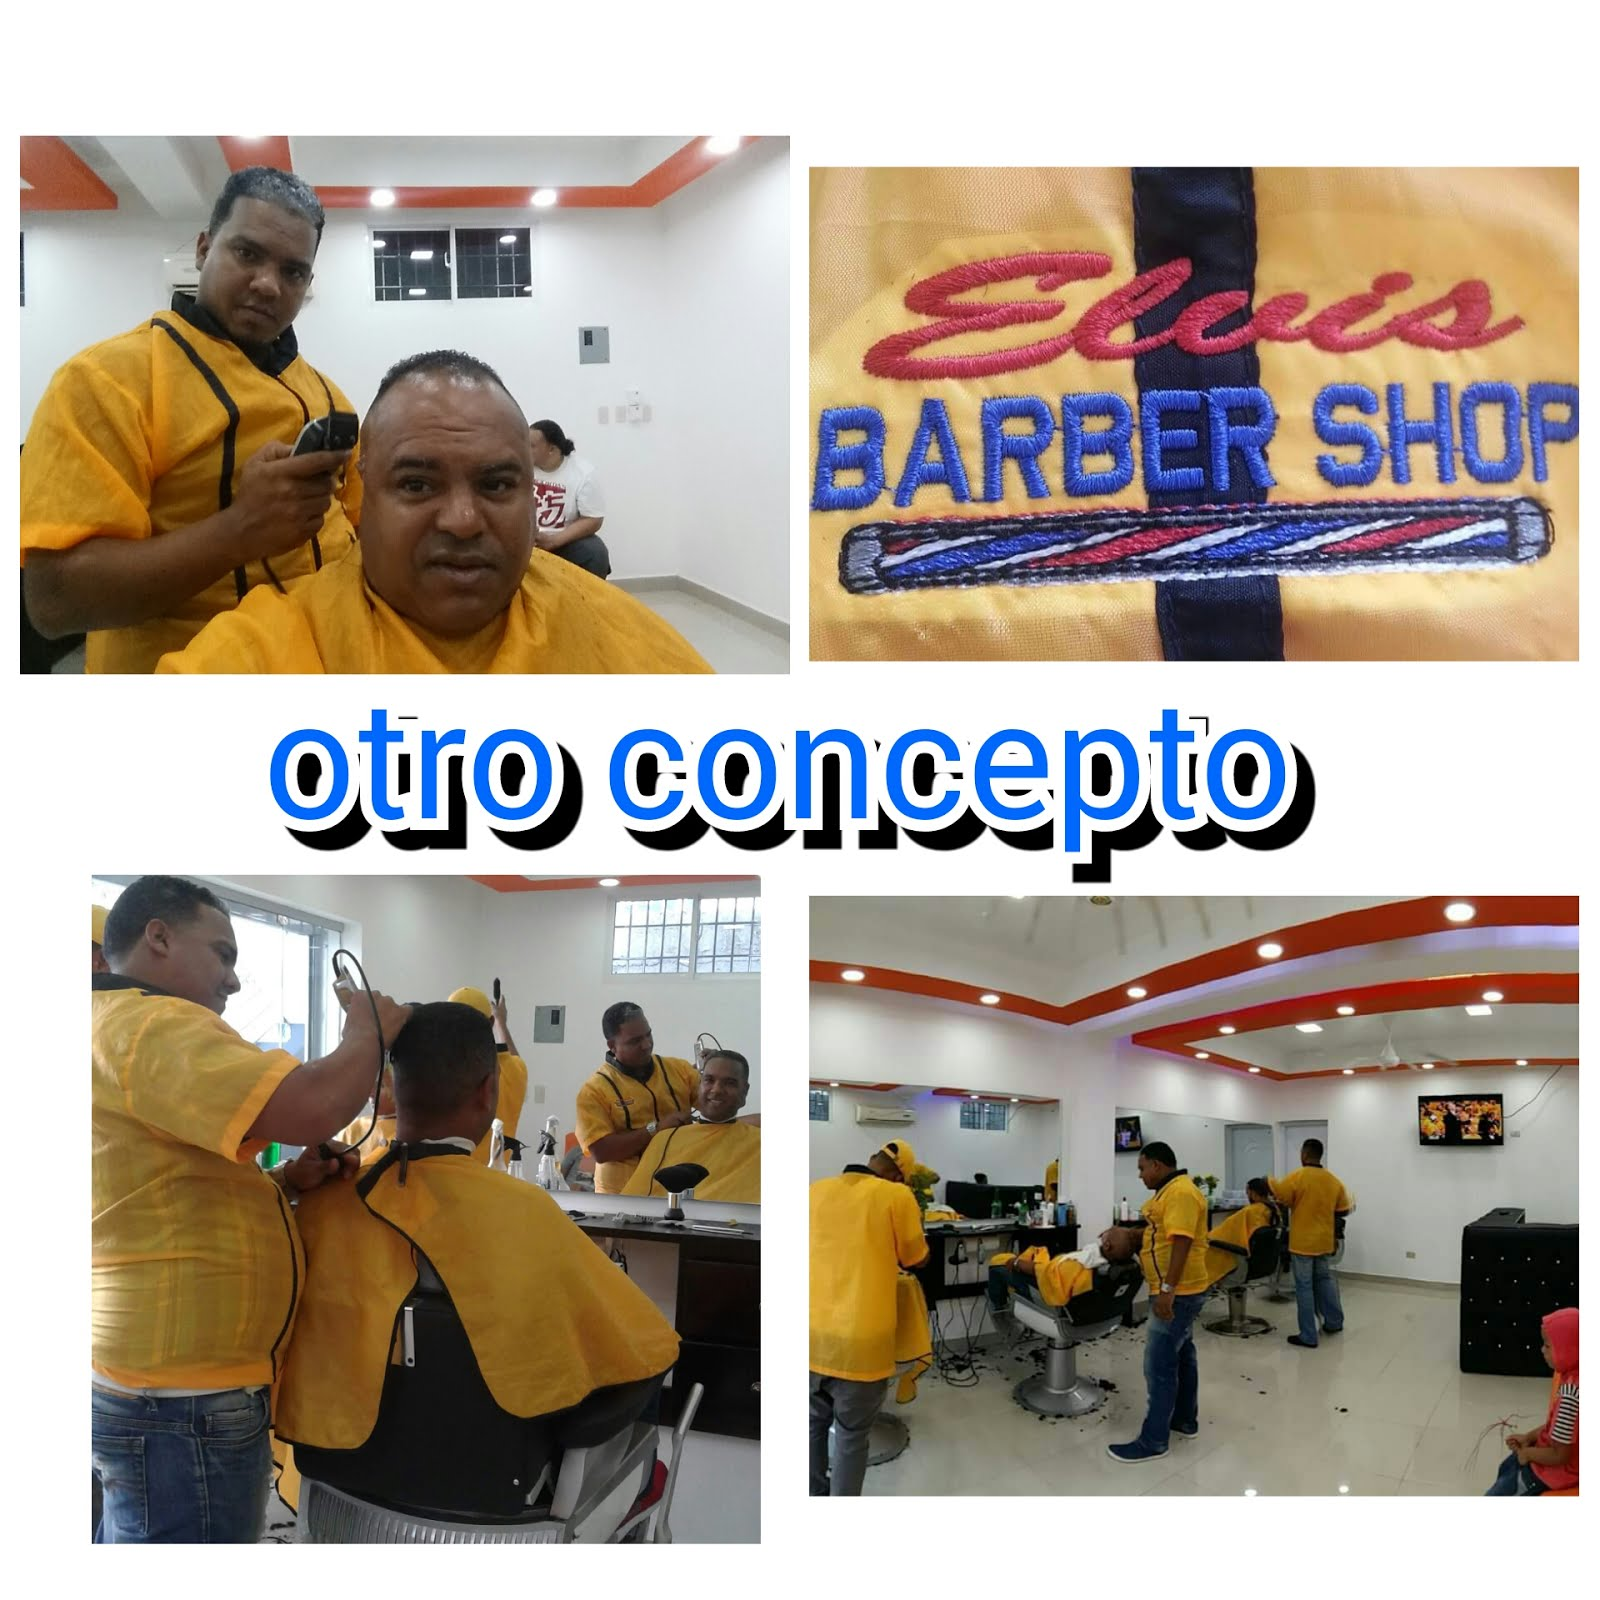 Elvis Barber Shop